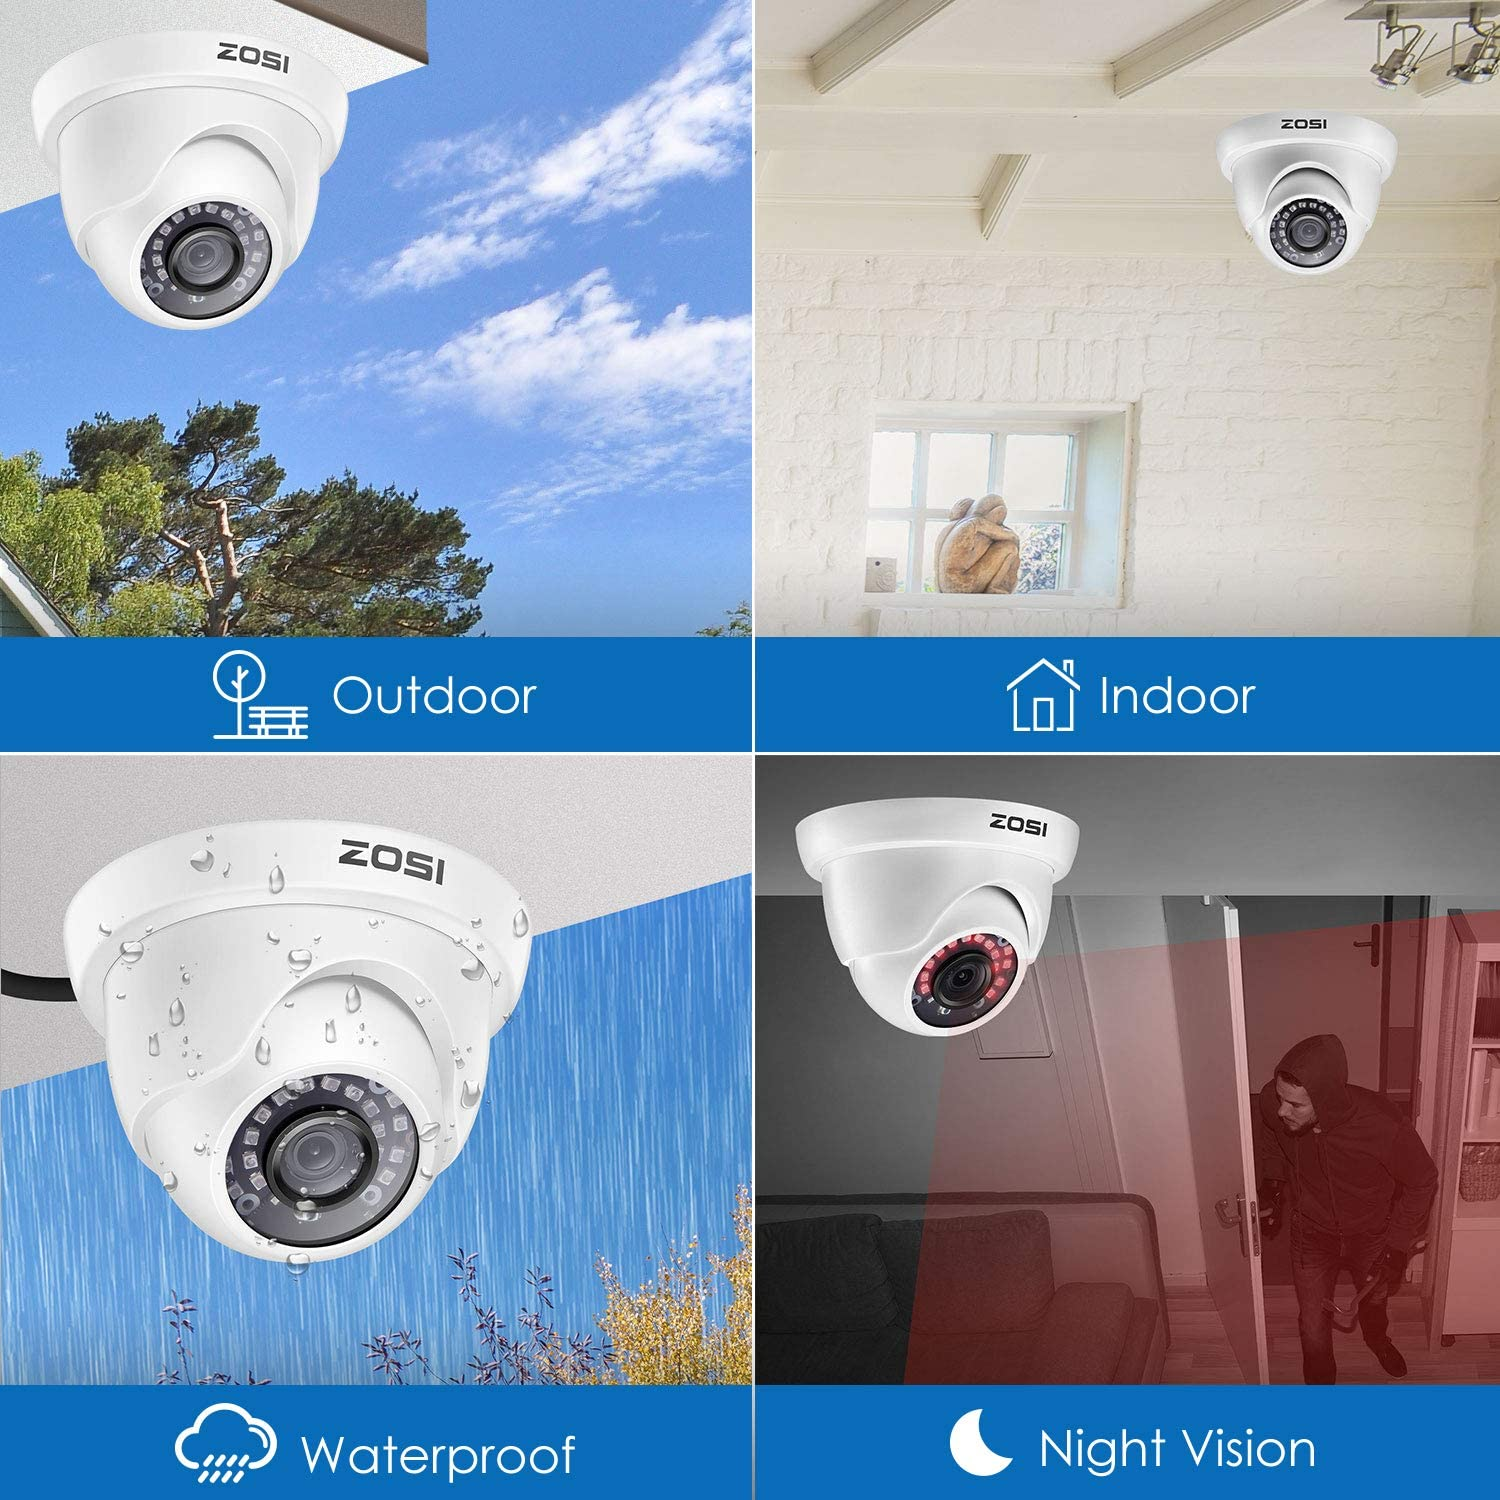 16 Channel 1080P Security System, 1080P Dome Cameras, H.265+Video Compression